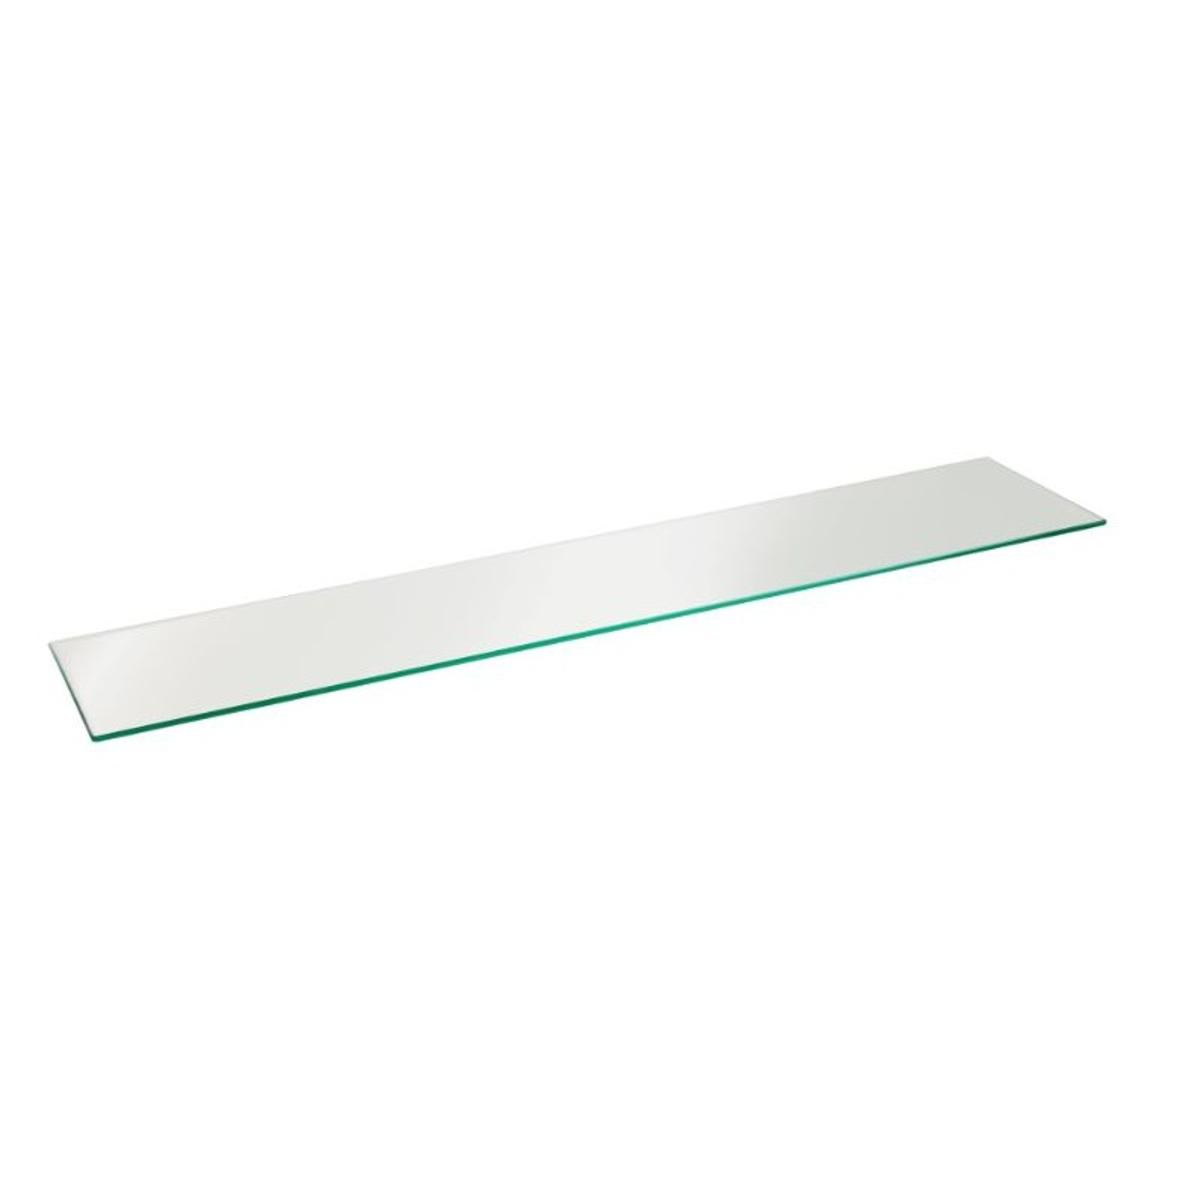 Wandregal Glas Regal Glas Glasregal Wandregal Klarglas In 6020 Arzl For €63.00 For Sale | Shpock